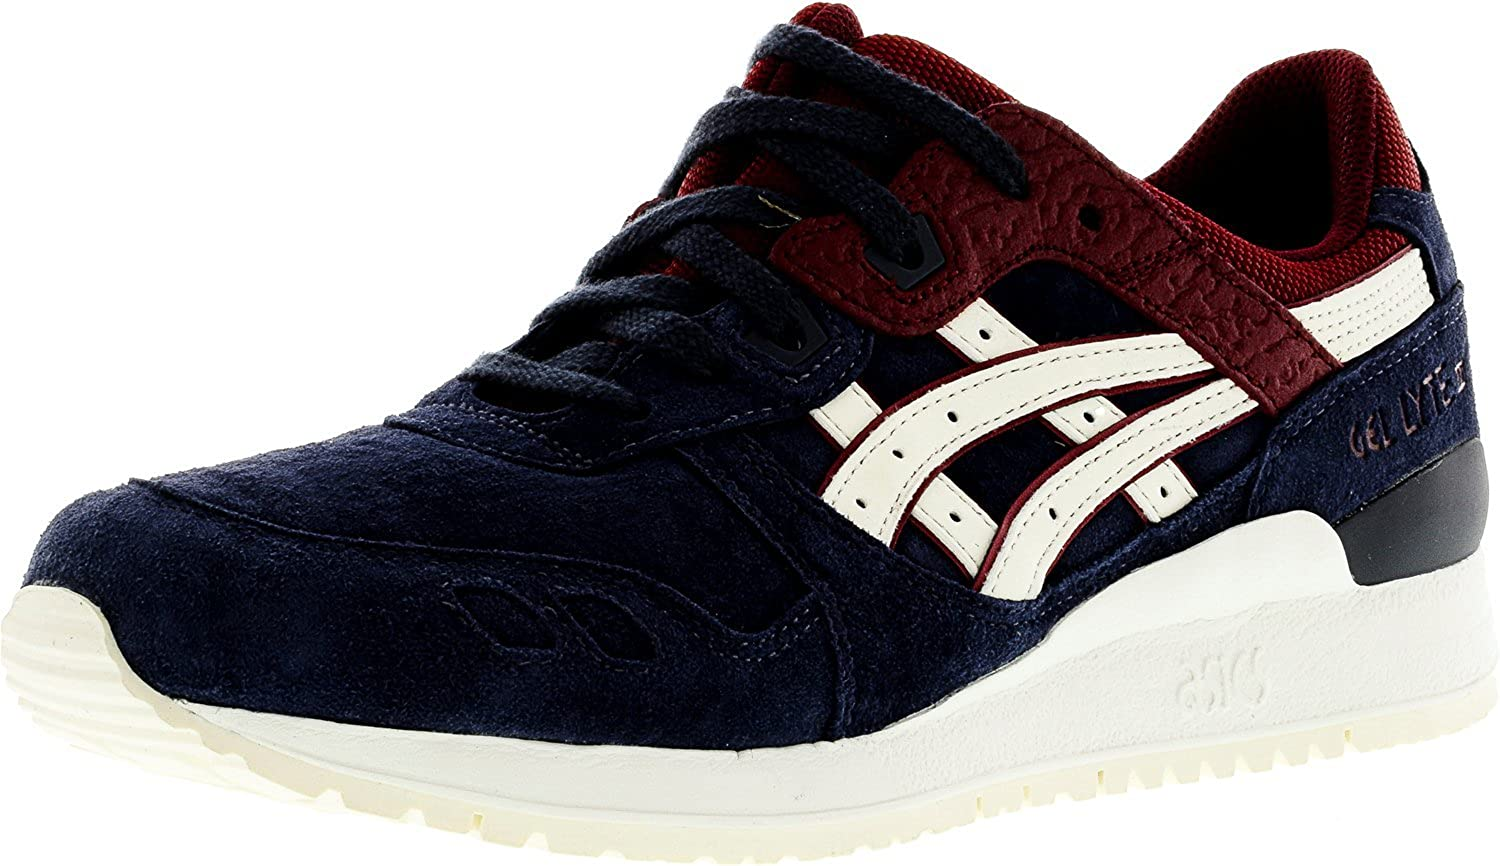 sports shoes 4f240 6f56a Onitsuka Tiger by Asics Unisex Gel-Lyte III? India Ink/Slight White Sneaker  Men's 11 Medium